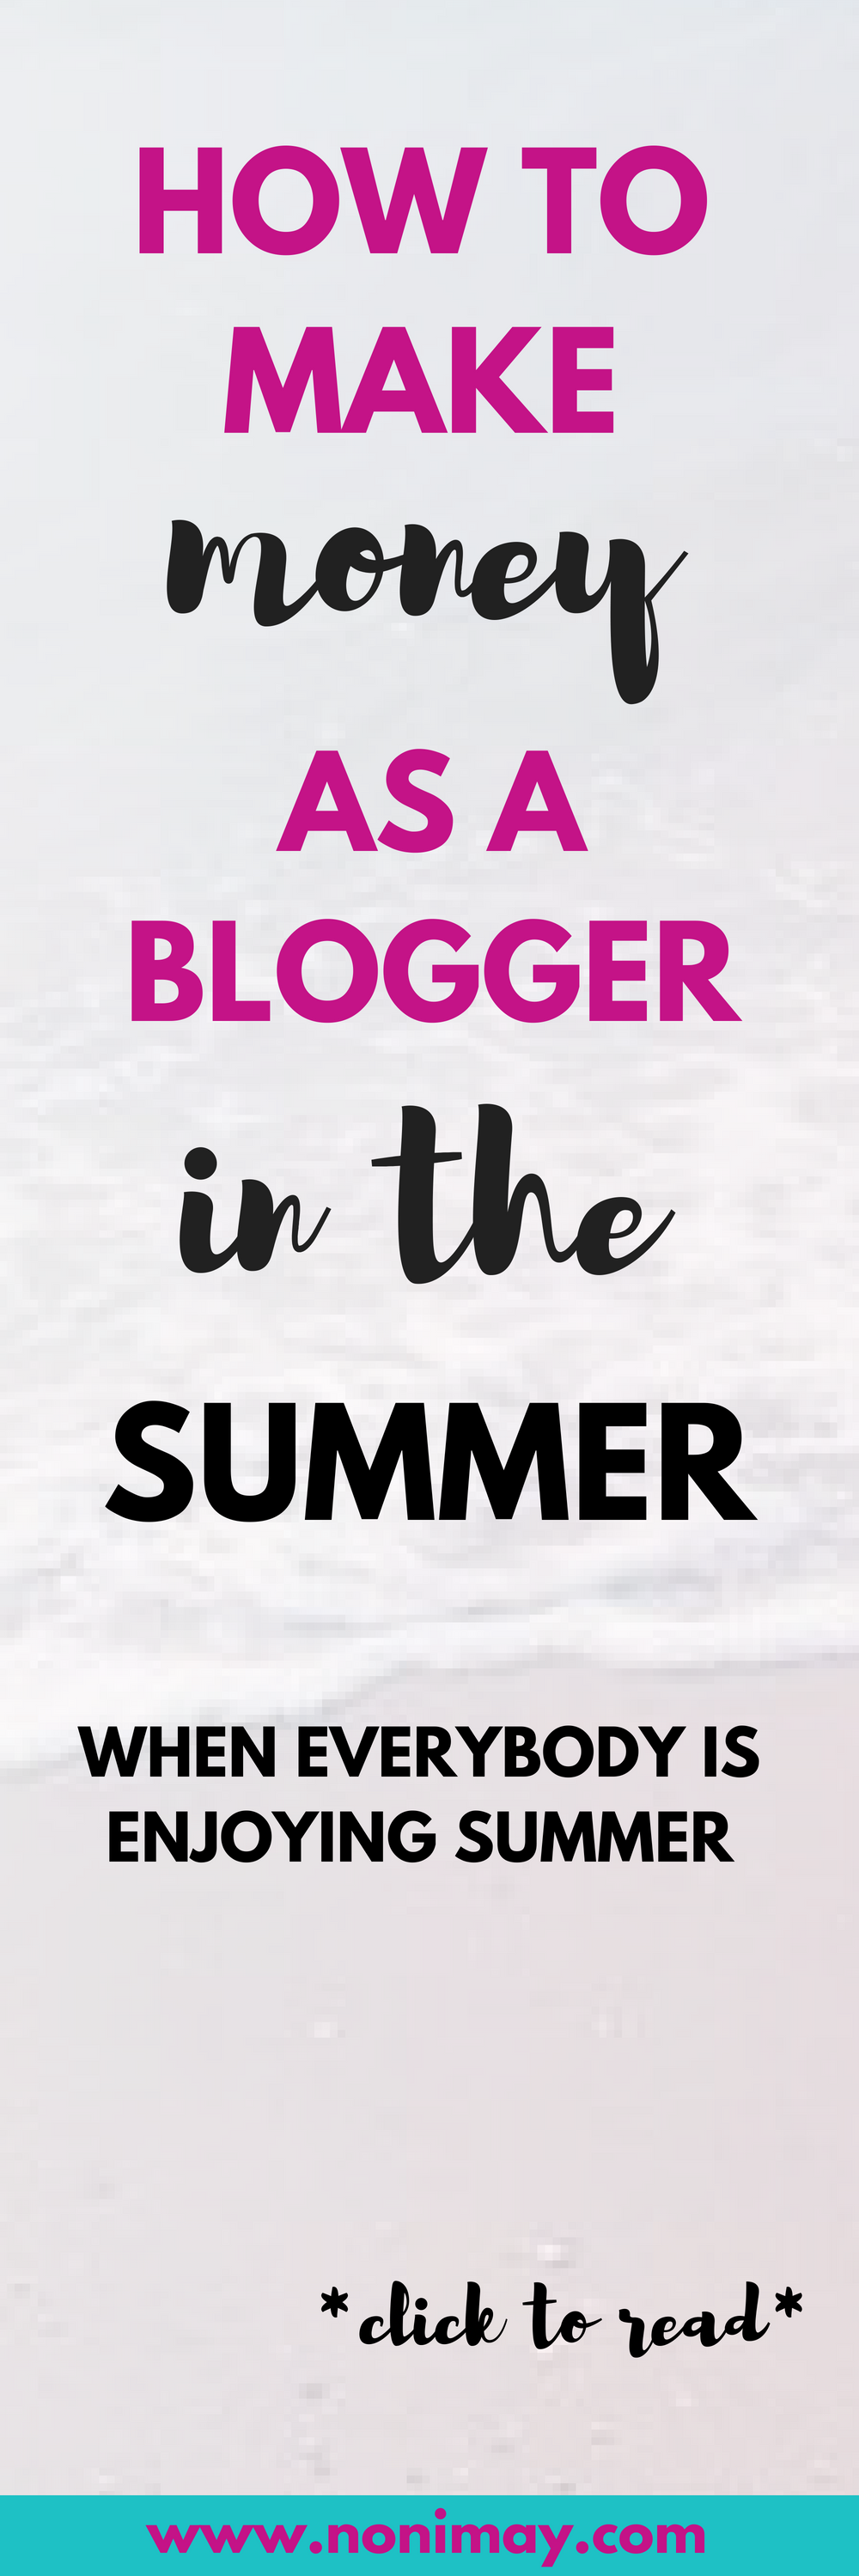 How to make money as a blogger in the summer when summer sales are slow and everybody is enjoying summer